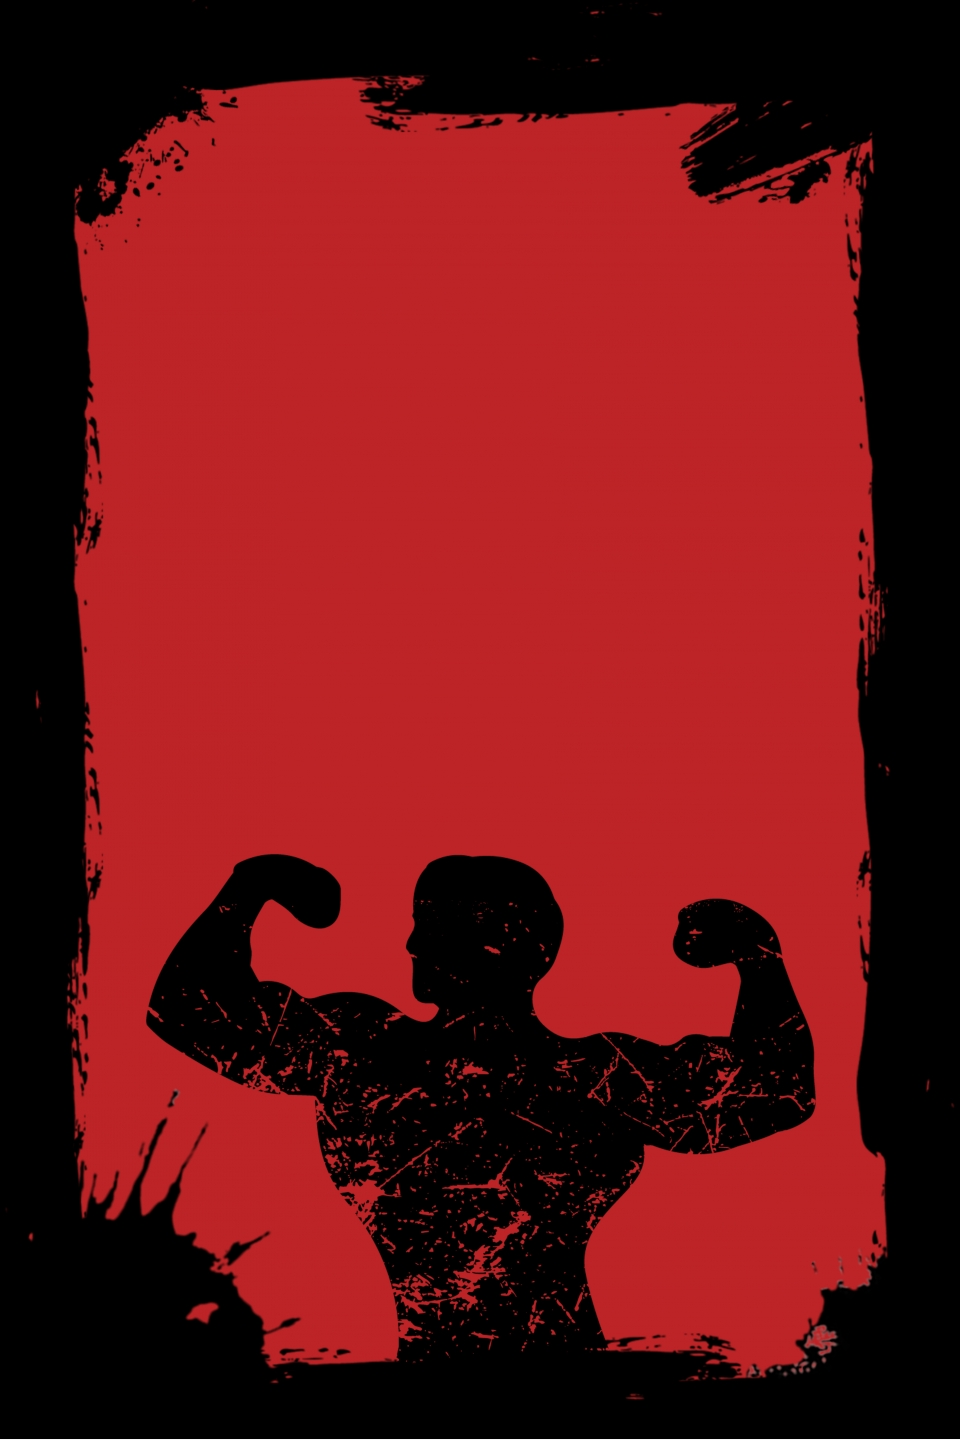 Gym Poster Background Material, Gym Poster, Fitness, Macho